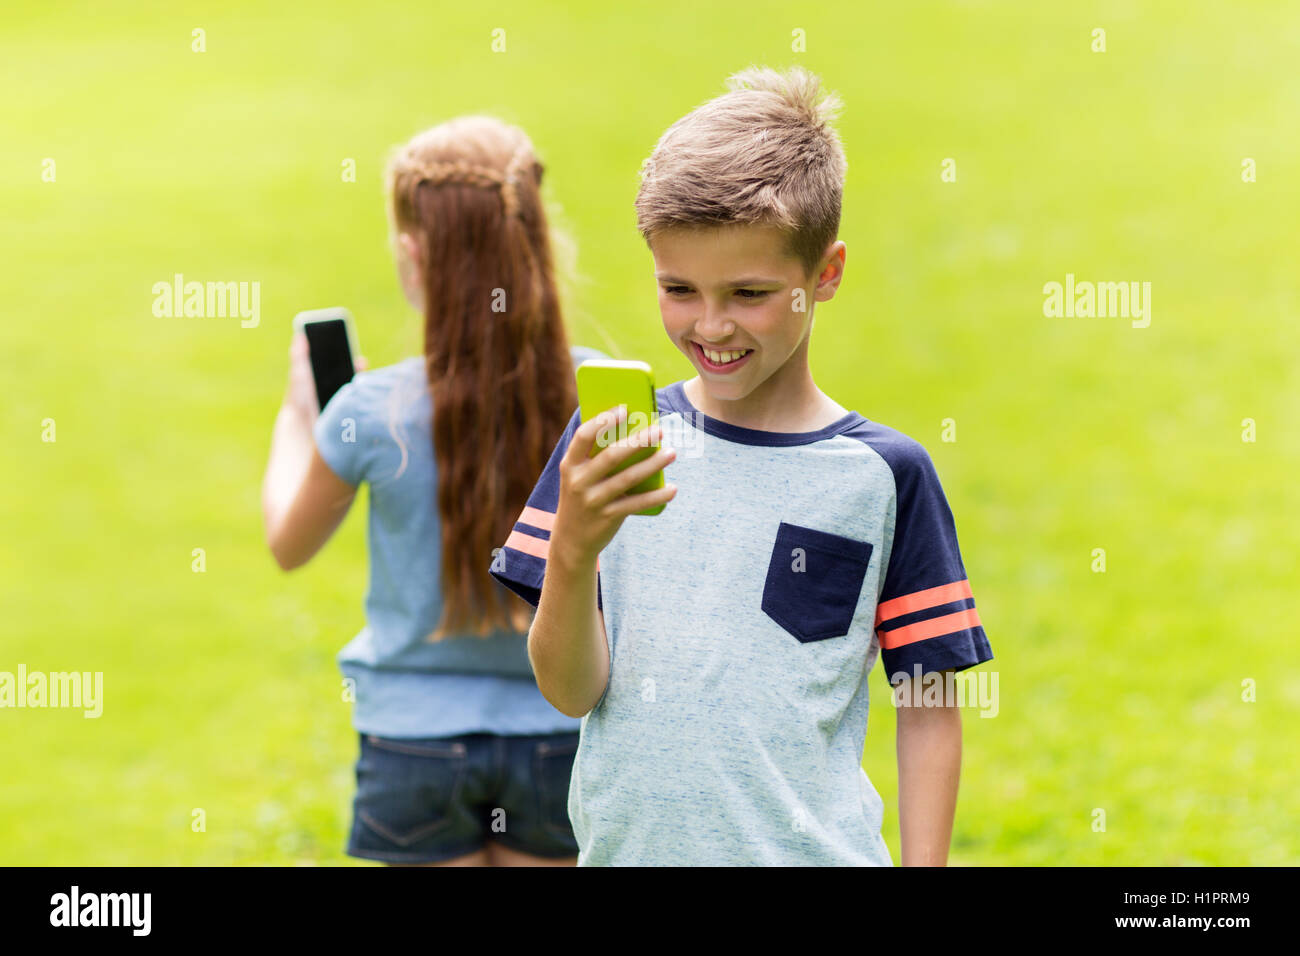 kids with smartphones playing game in summer park - Stock Image